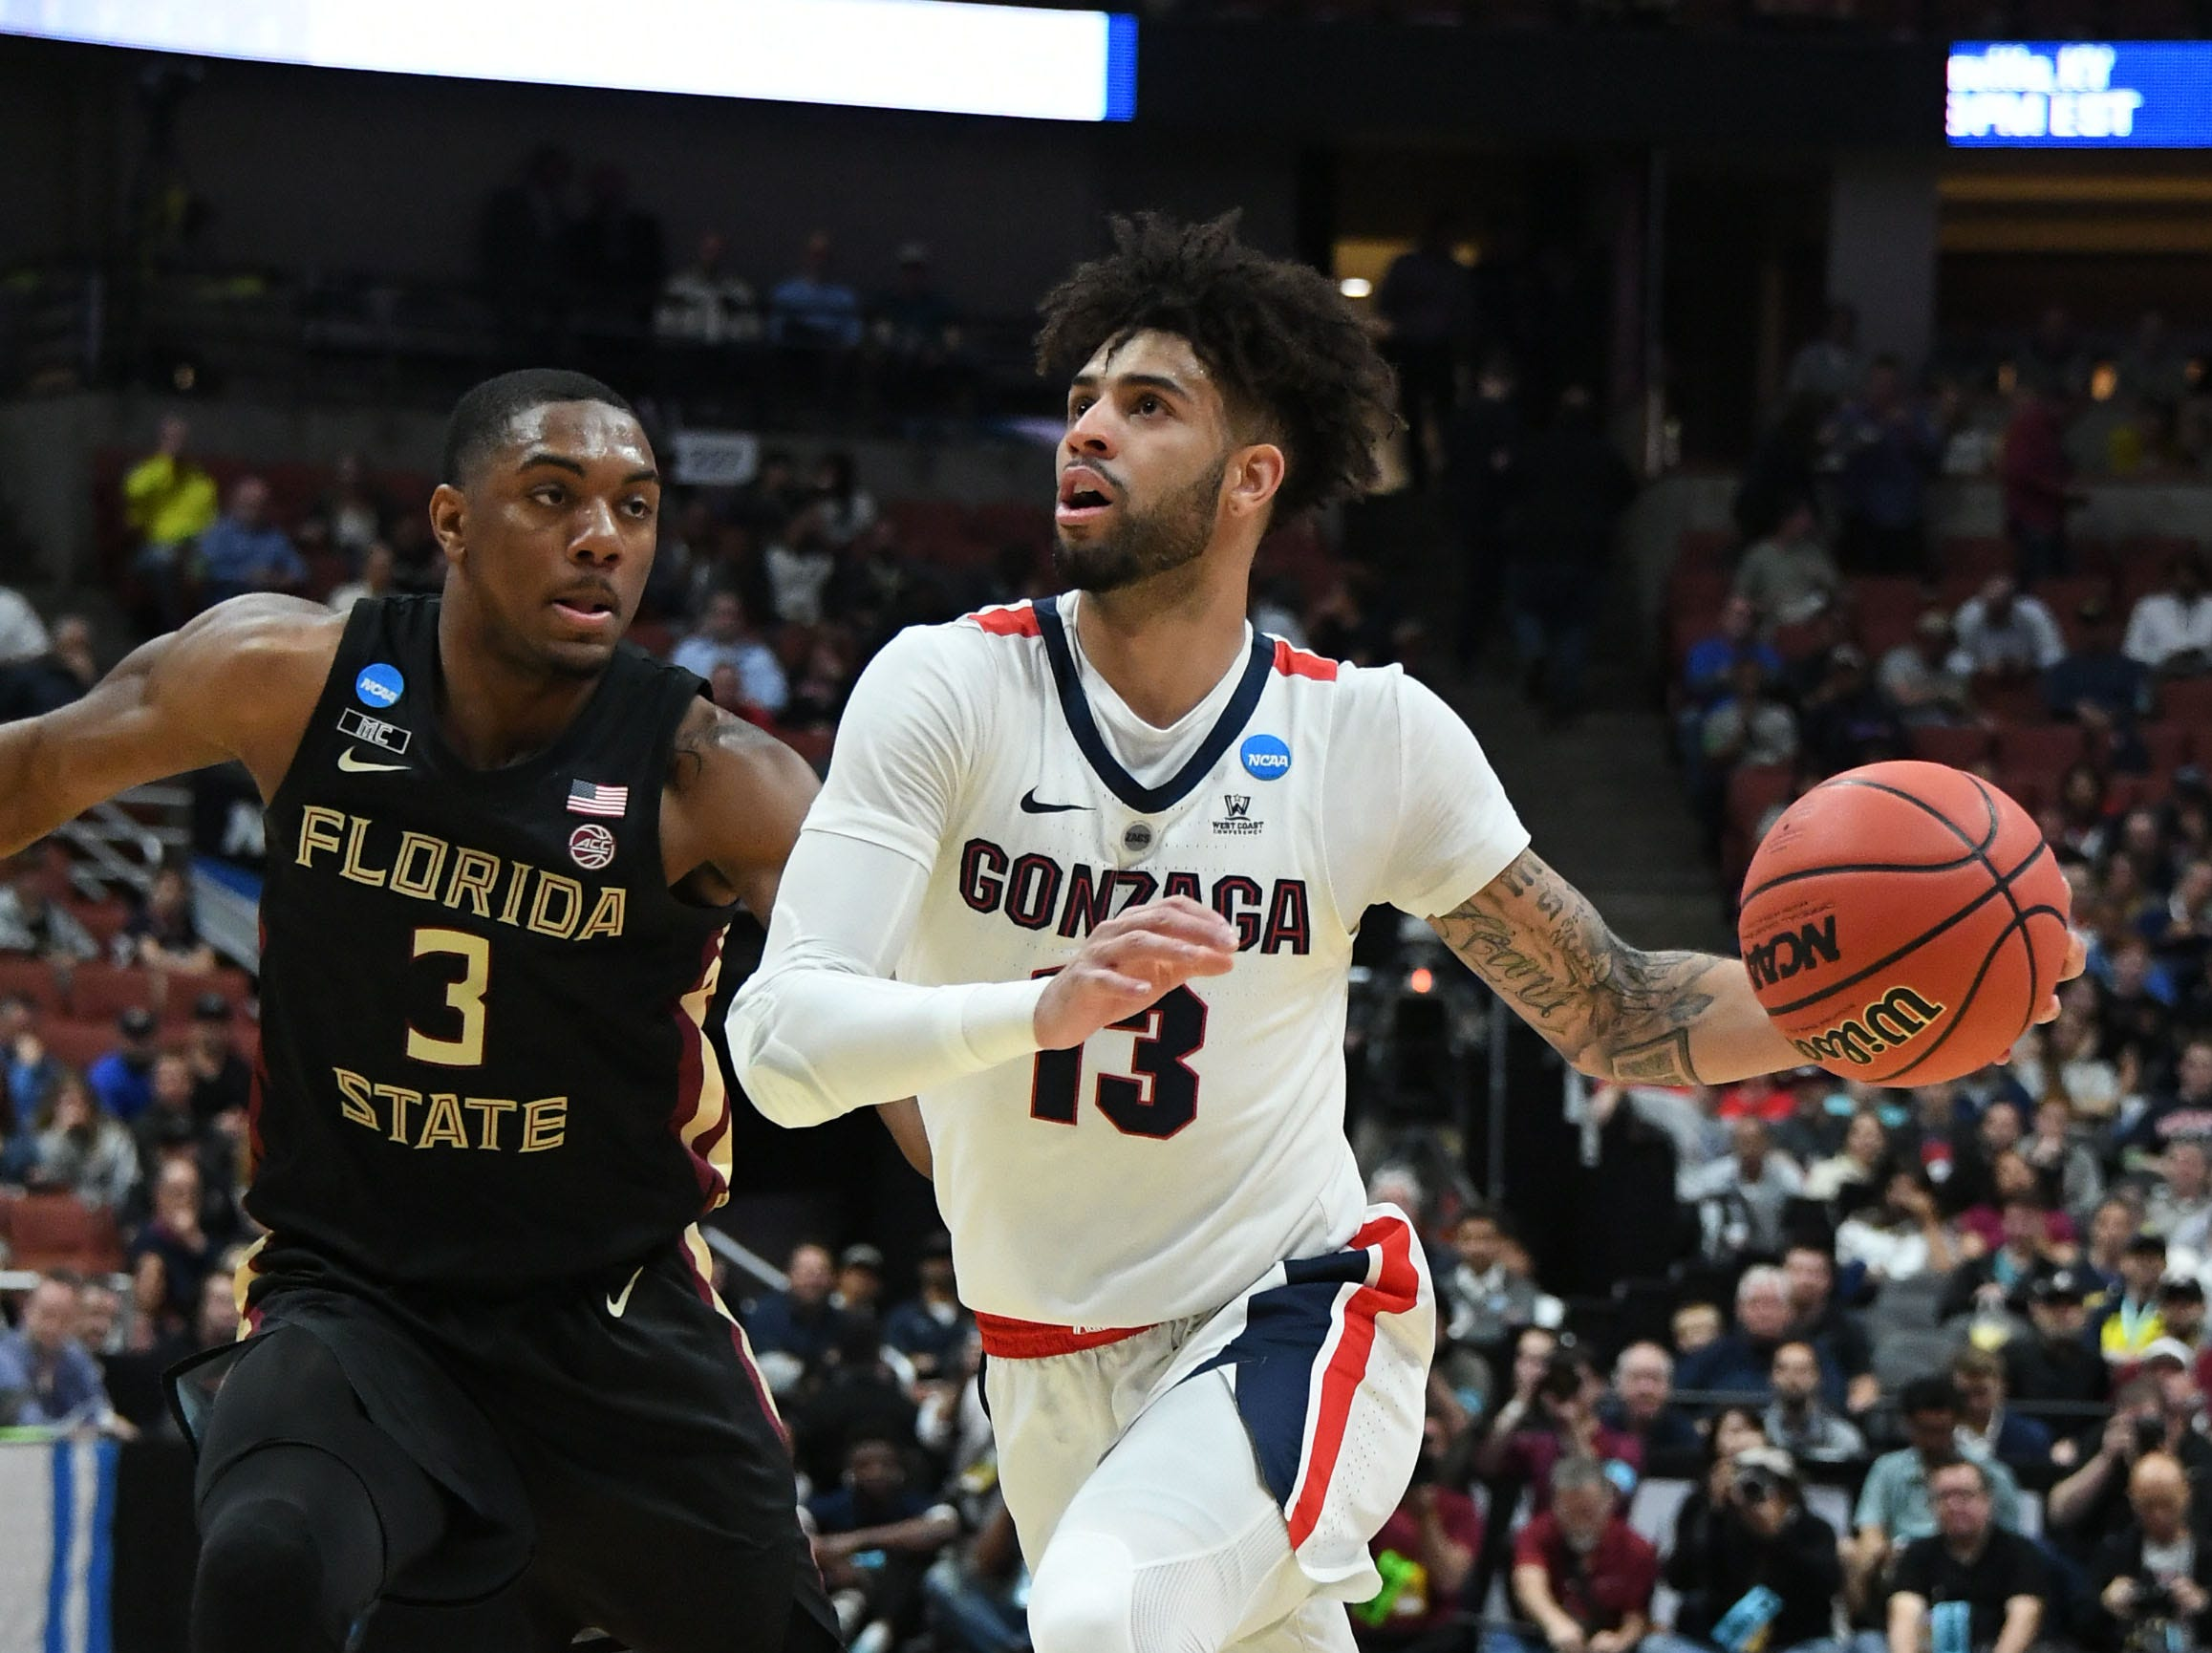 March 28, 2019; Anaheim, CA, USA; Gonzaga Bulldogs guard Josh Perkins (13) moves to the basket against Florida State Seminoles guard Trent Forrest (3) during the first half in the semifinals of the west regional of the 2019 NCAA Tournament at Honda Center. Mandatory Credit: Richard Mackson-USA TODAY Sports